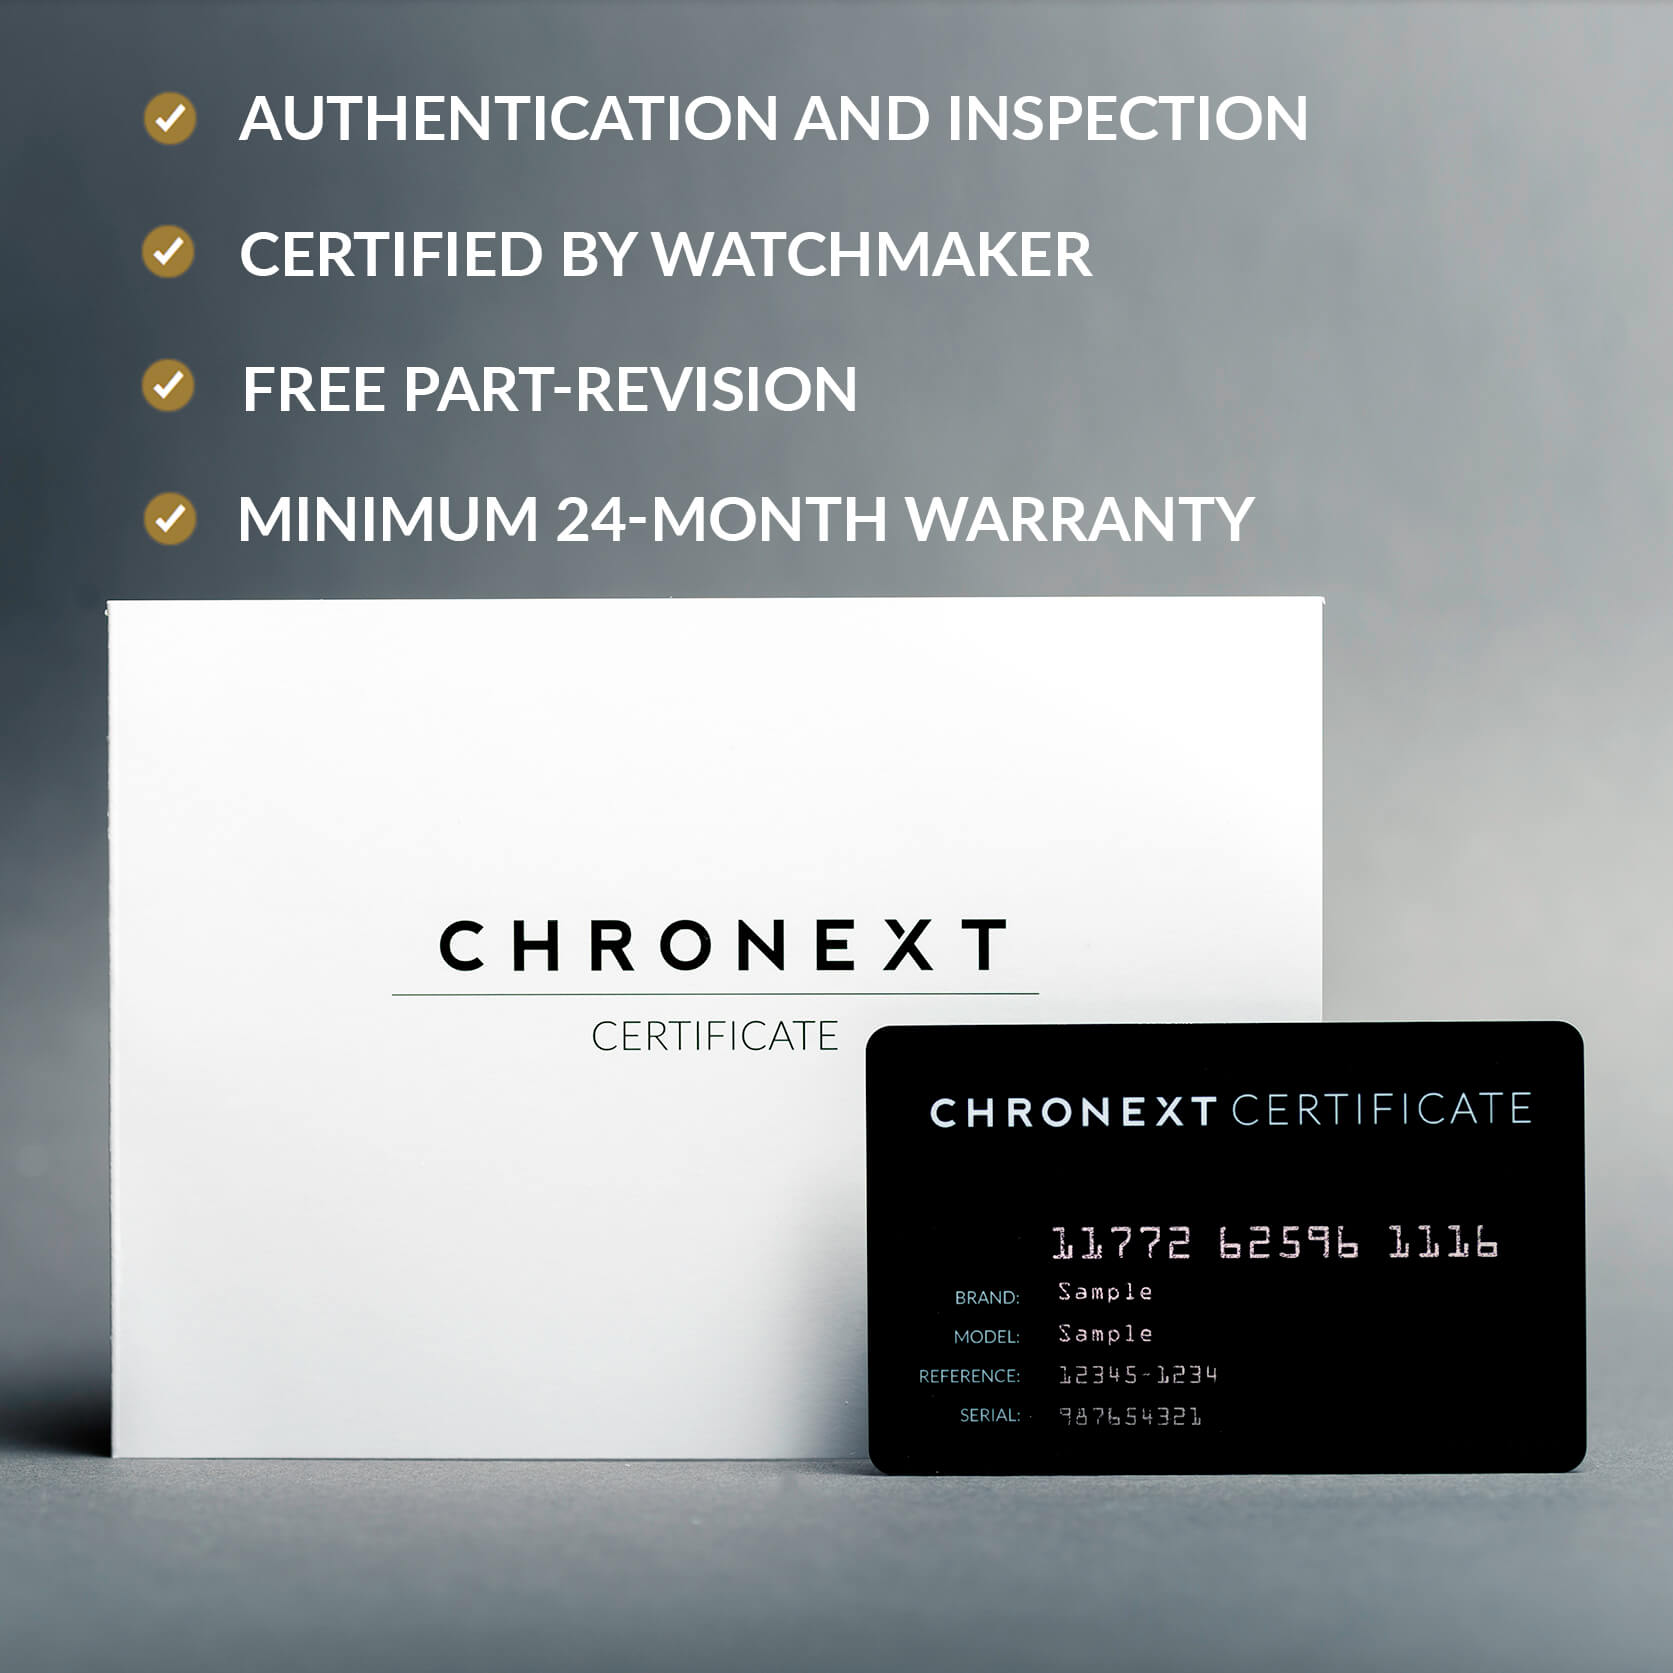 Our Chronext certificate